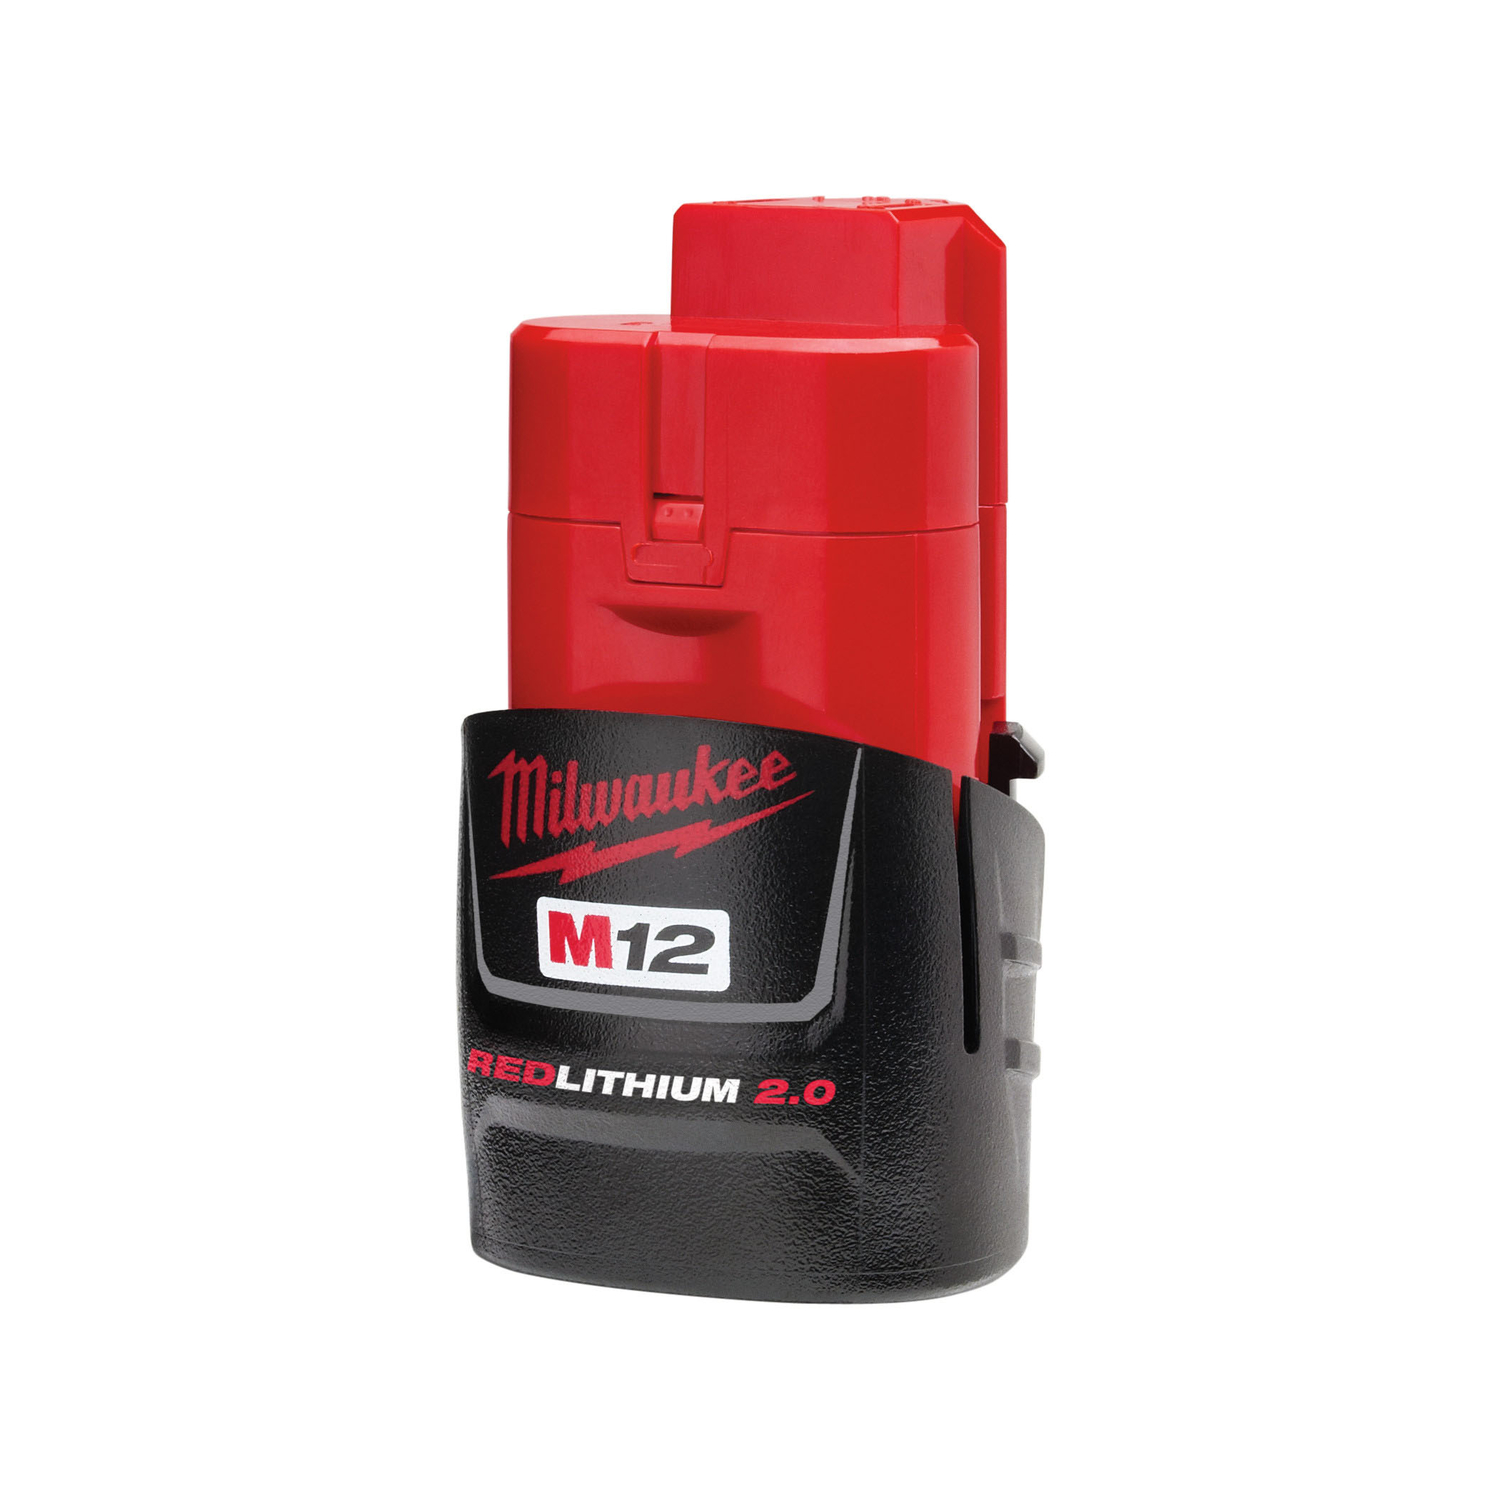 Milwaukee  M12 2.0  RED LITHIUM 2.0  12 volt Lithium-Ion  Battery Pack  1 pc.